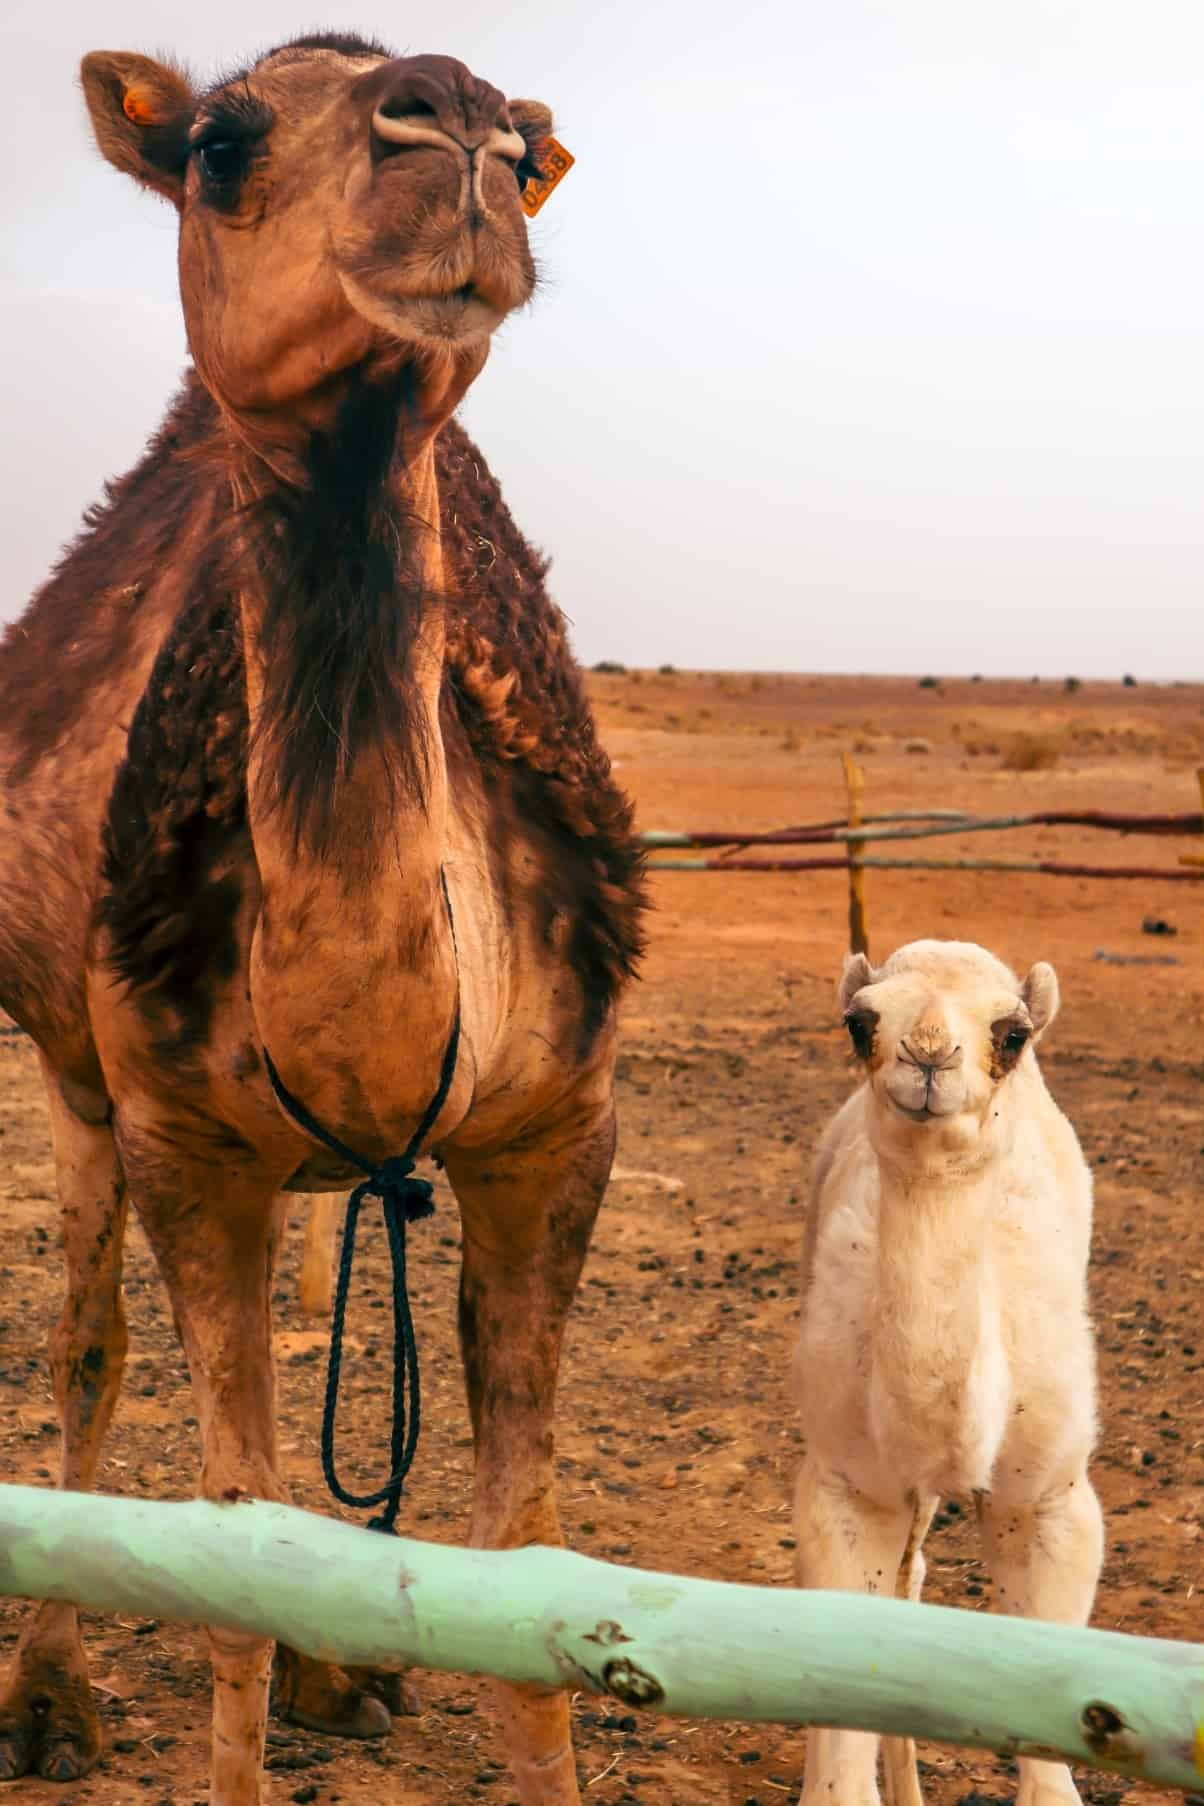 camels in morocco - 10-day morocco itinerary